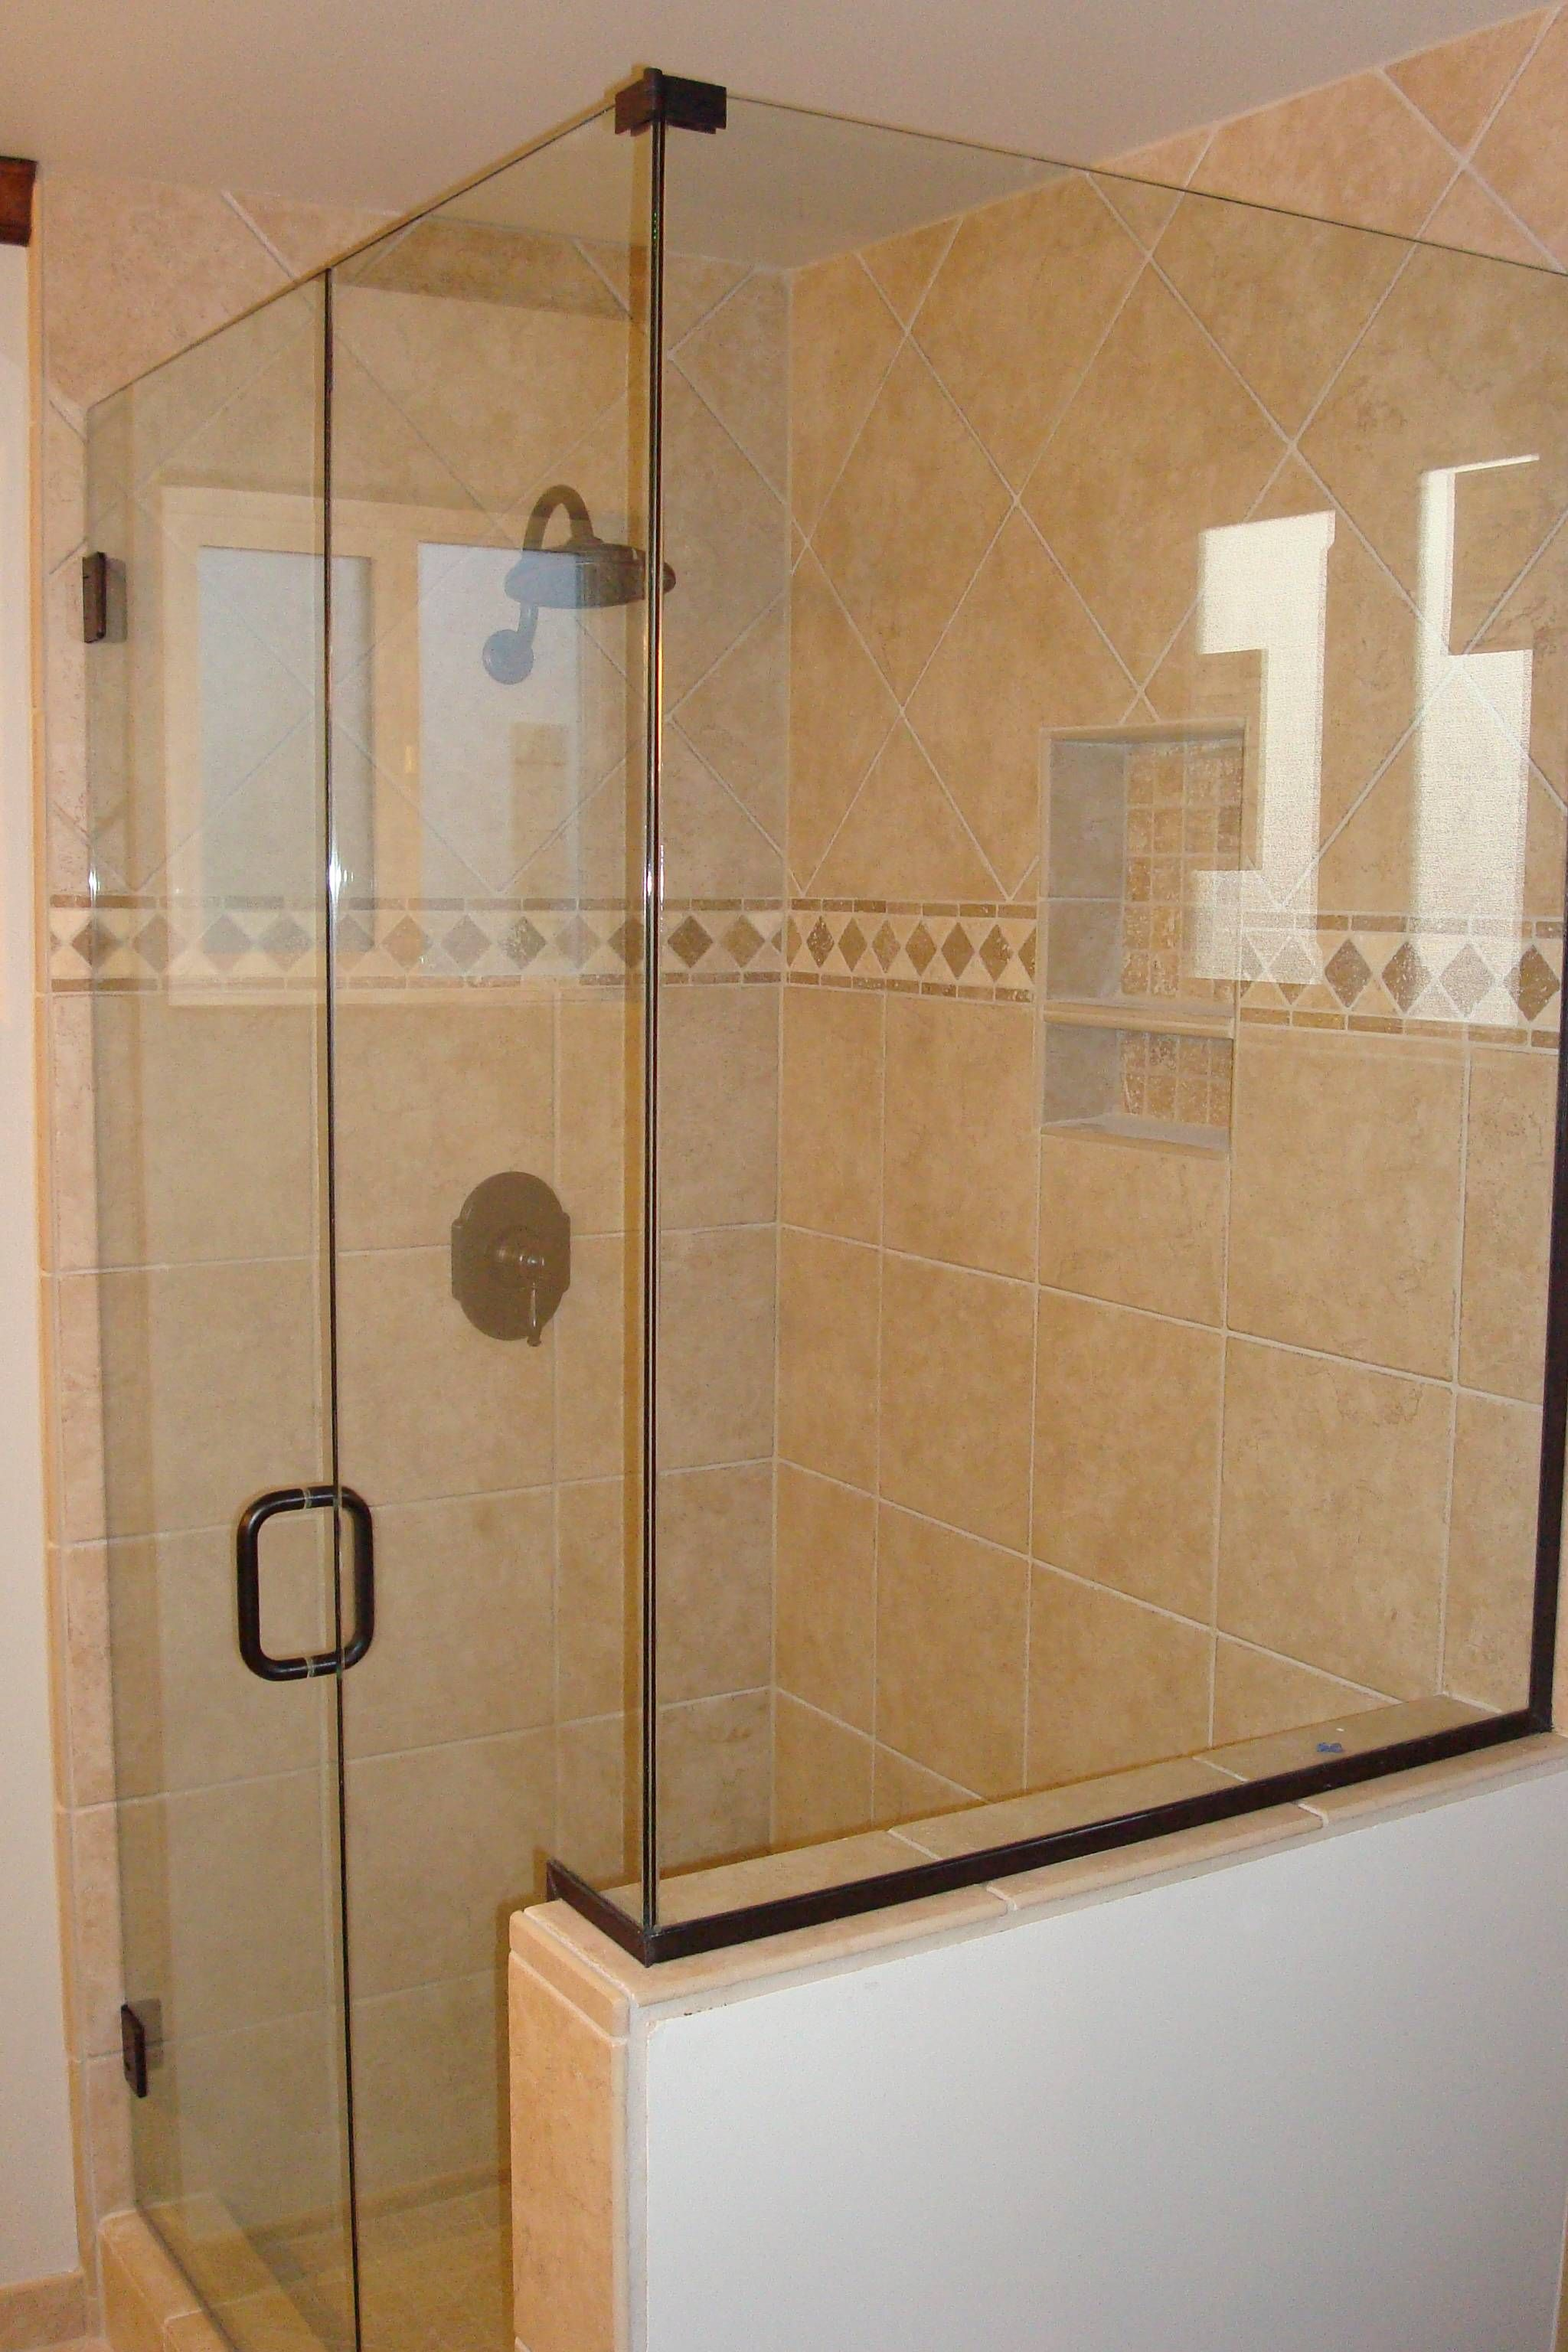 25 Shower Wall Panels Instead Of Tiles | Shower enclosure ...